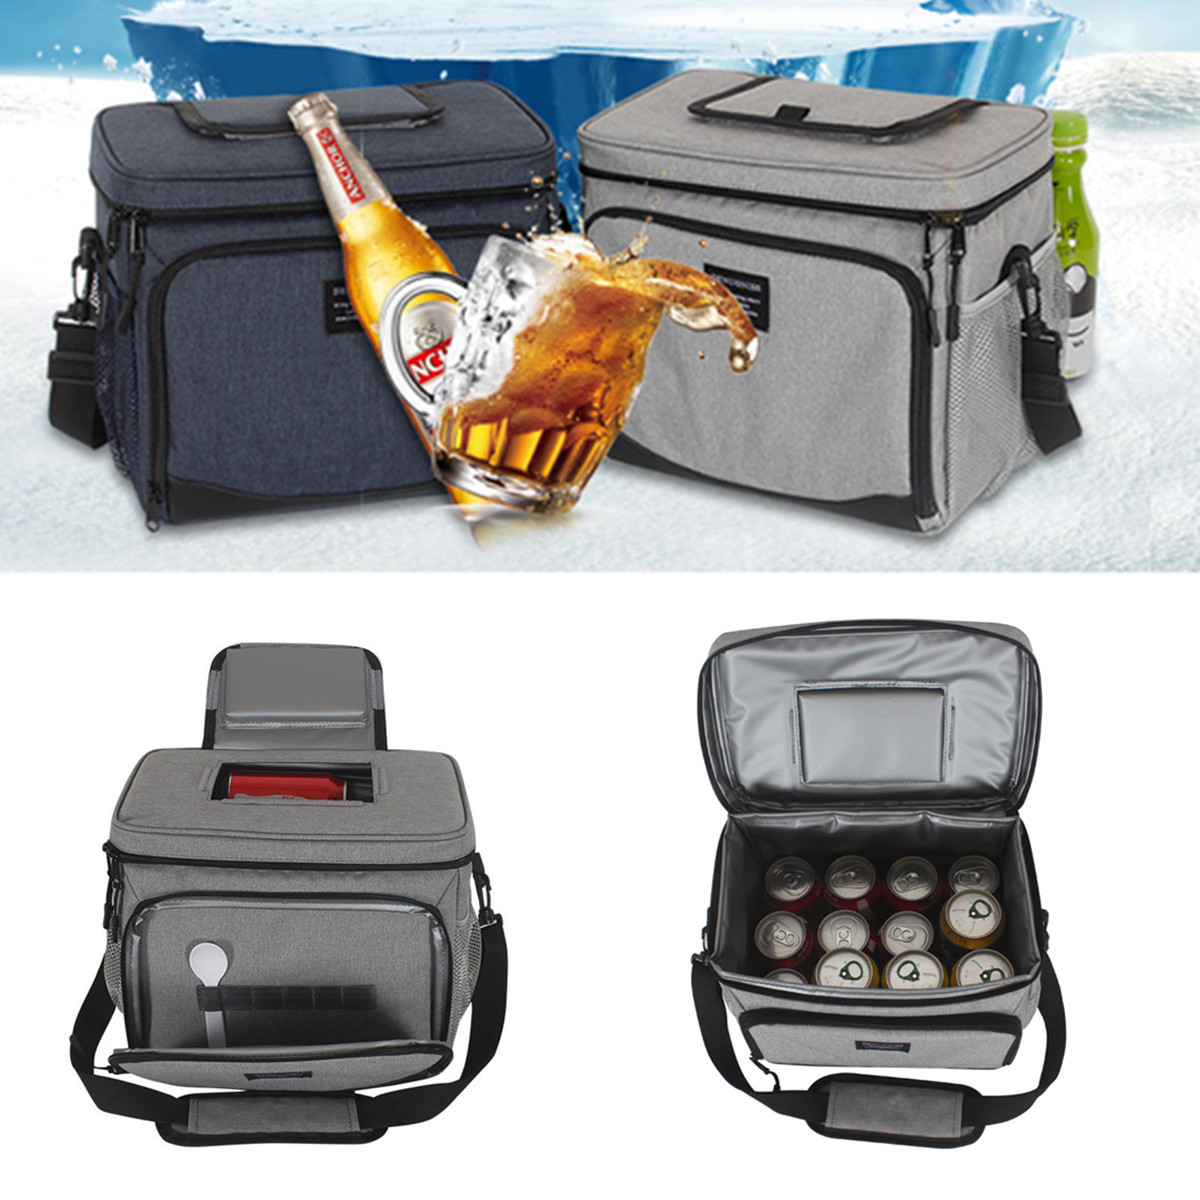 15L Outdoor Picnic Thermal Insulated Cooler Bag Lunch Food Box Container Storage Bag